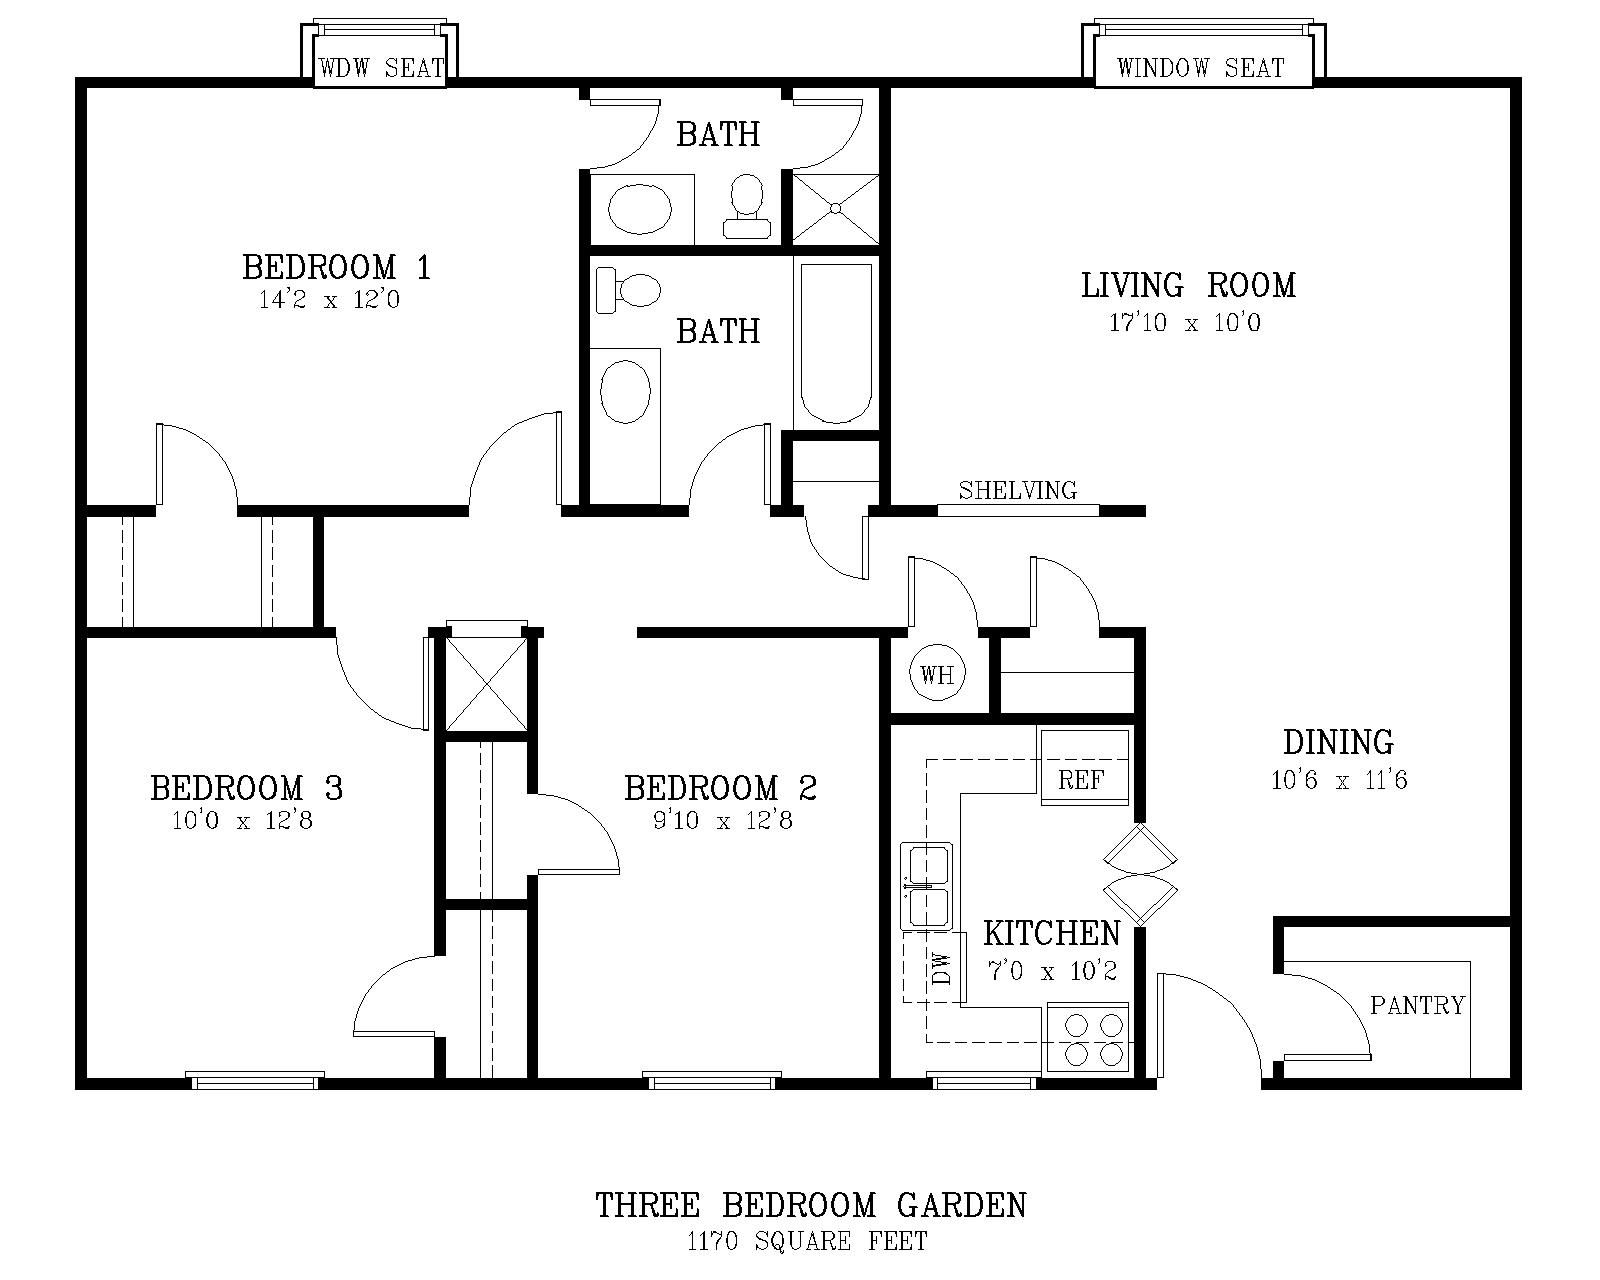 modern standard master bedroom size for your house interior design pictures home also kathaleenhalsey on pinterest rh